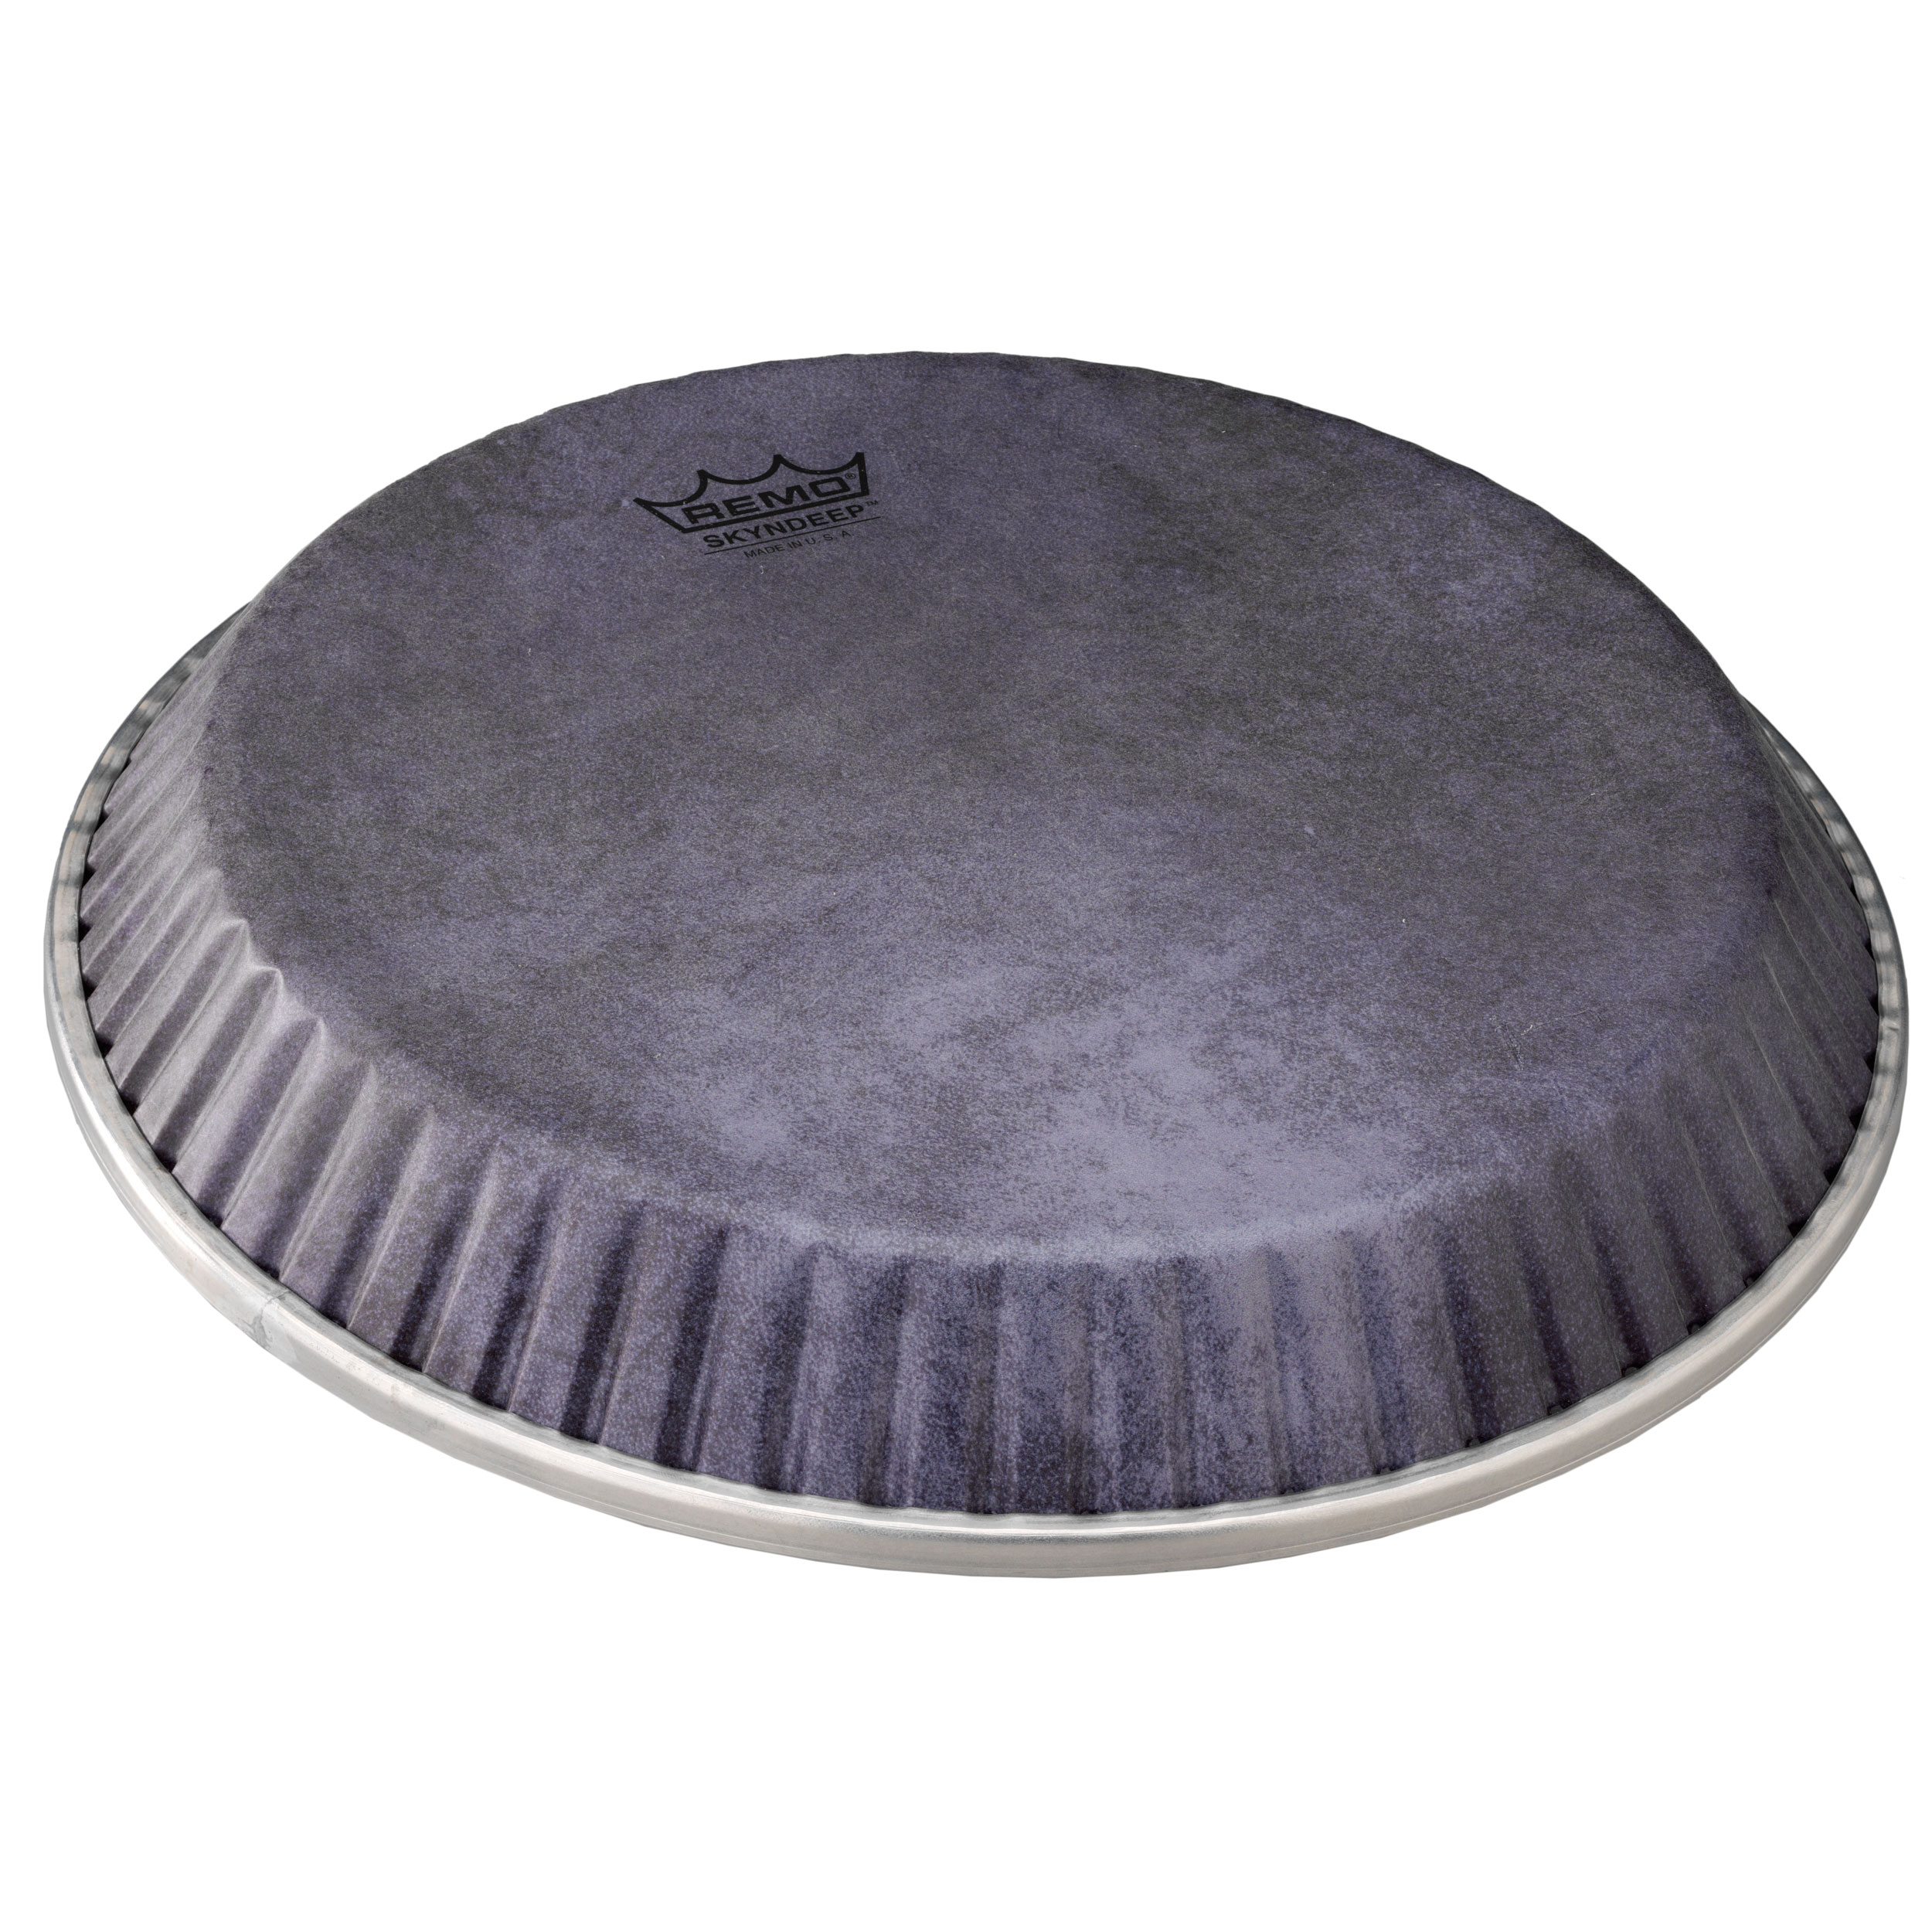 """Remo 12.5"""" Symmetry Skyndeep Conga Drum Head (D3 Collar) with Black Calfskin Graphic"""